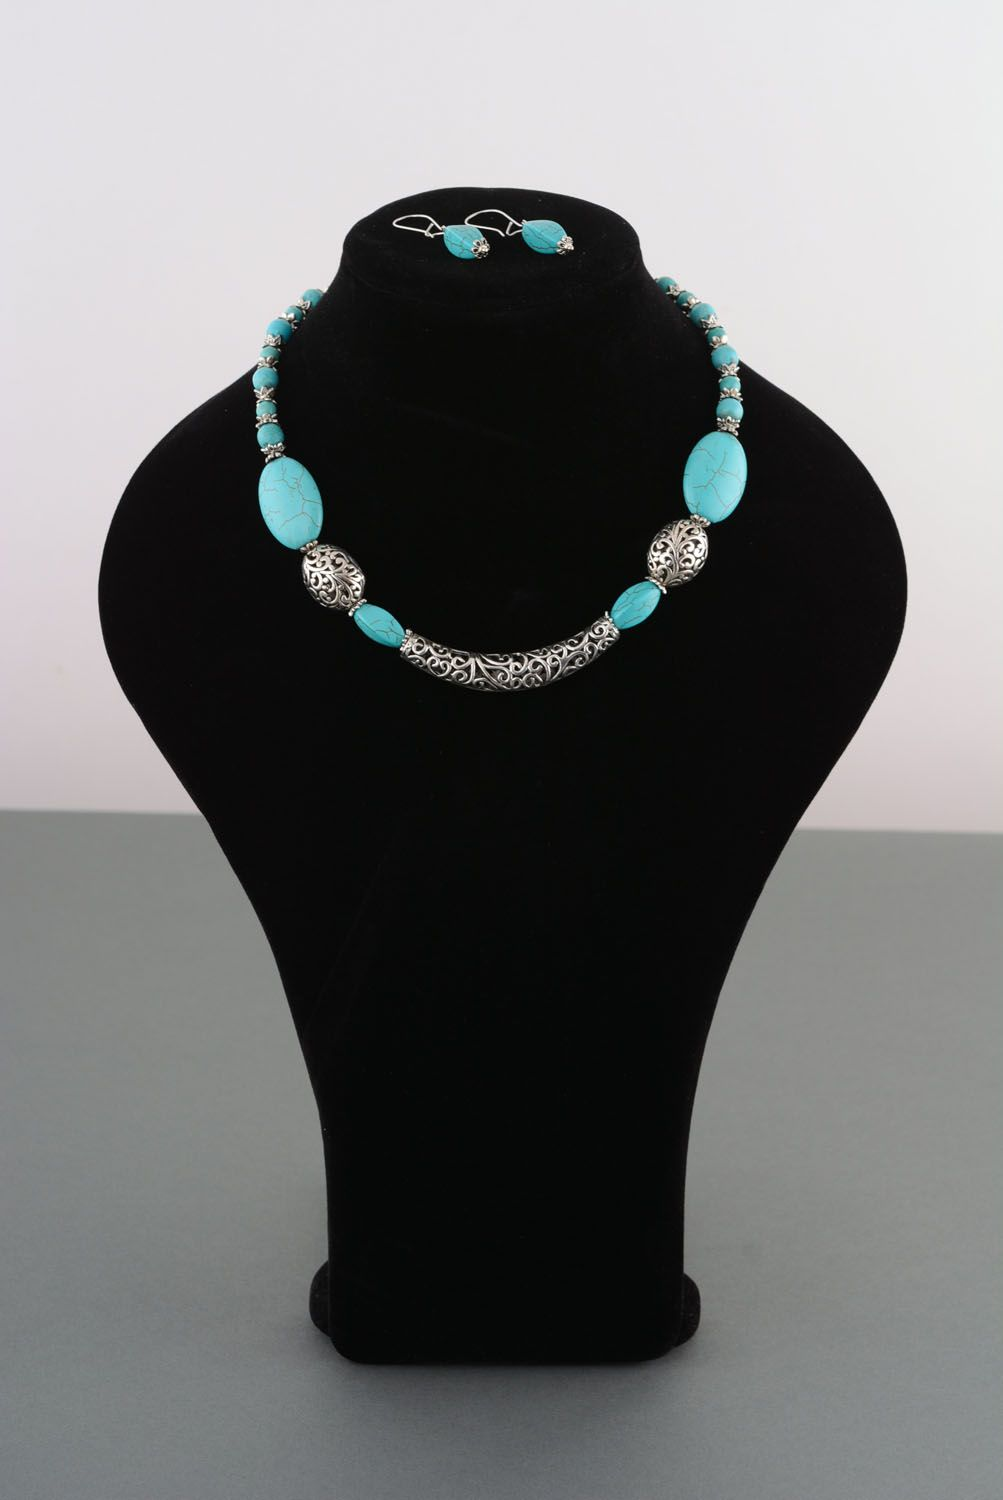 Necklace and earrings made of turquoise photo 1